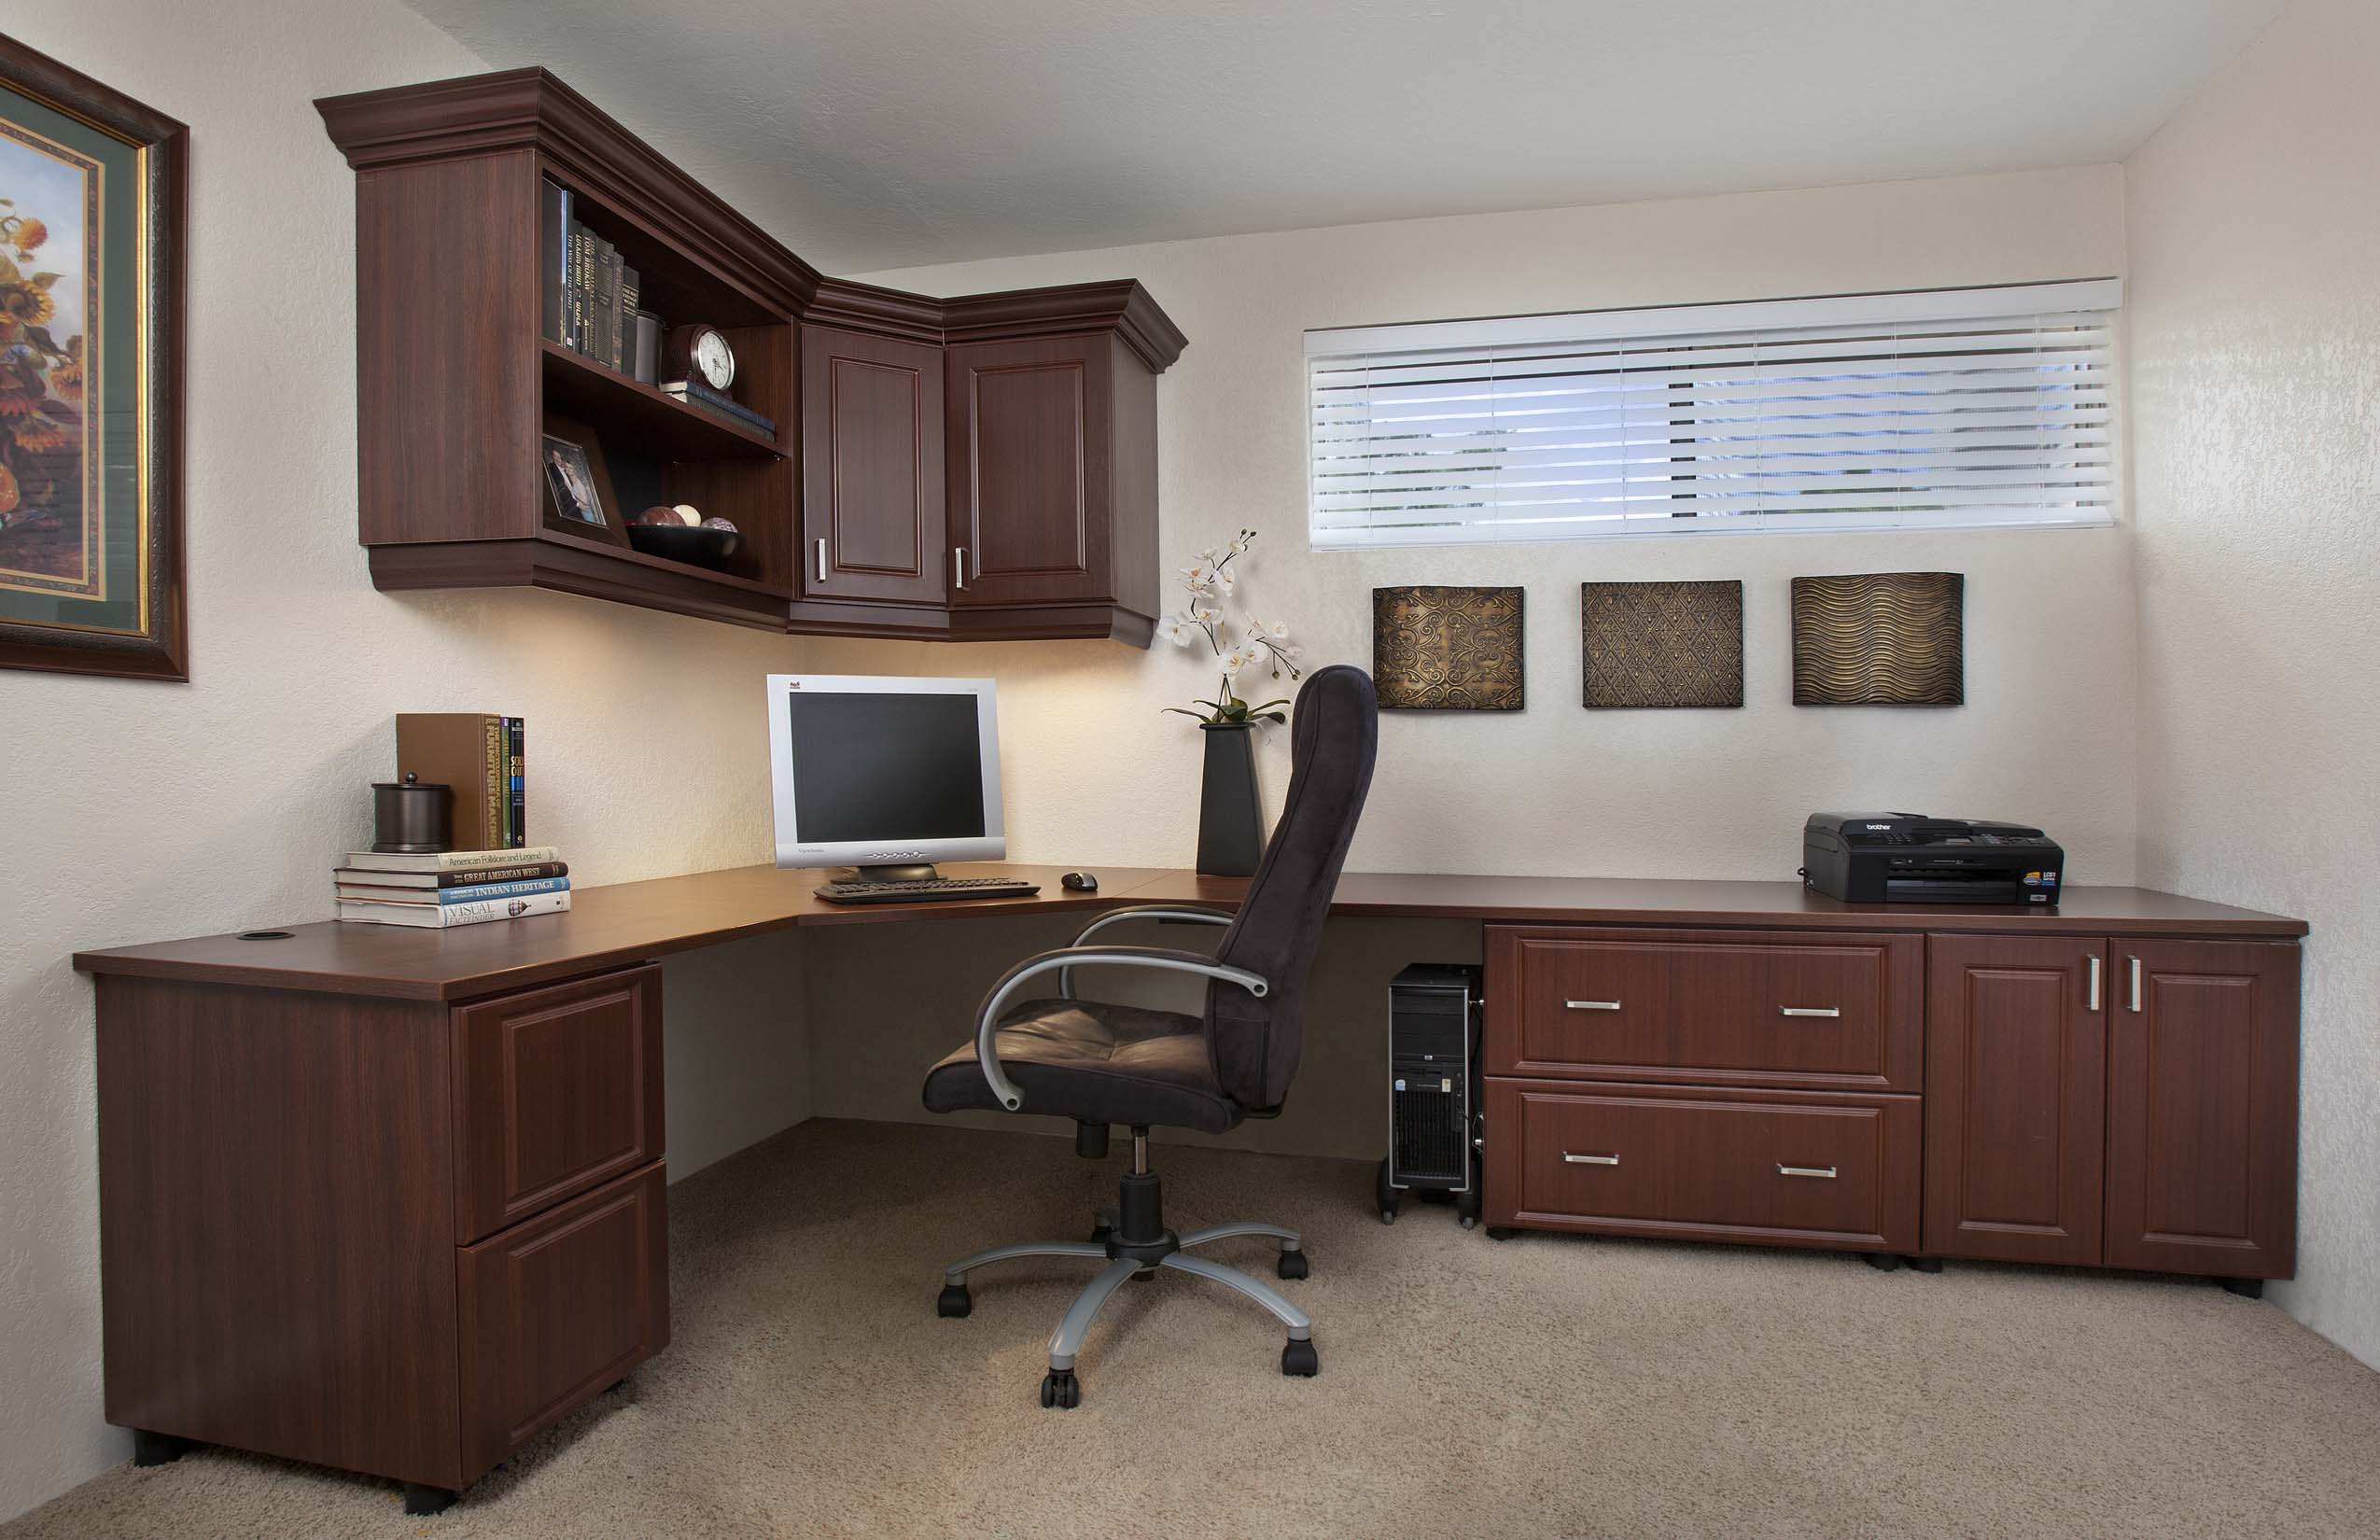 Home Office Cabinets Home Office Cabinets Office Organization Design In Michigan